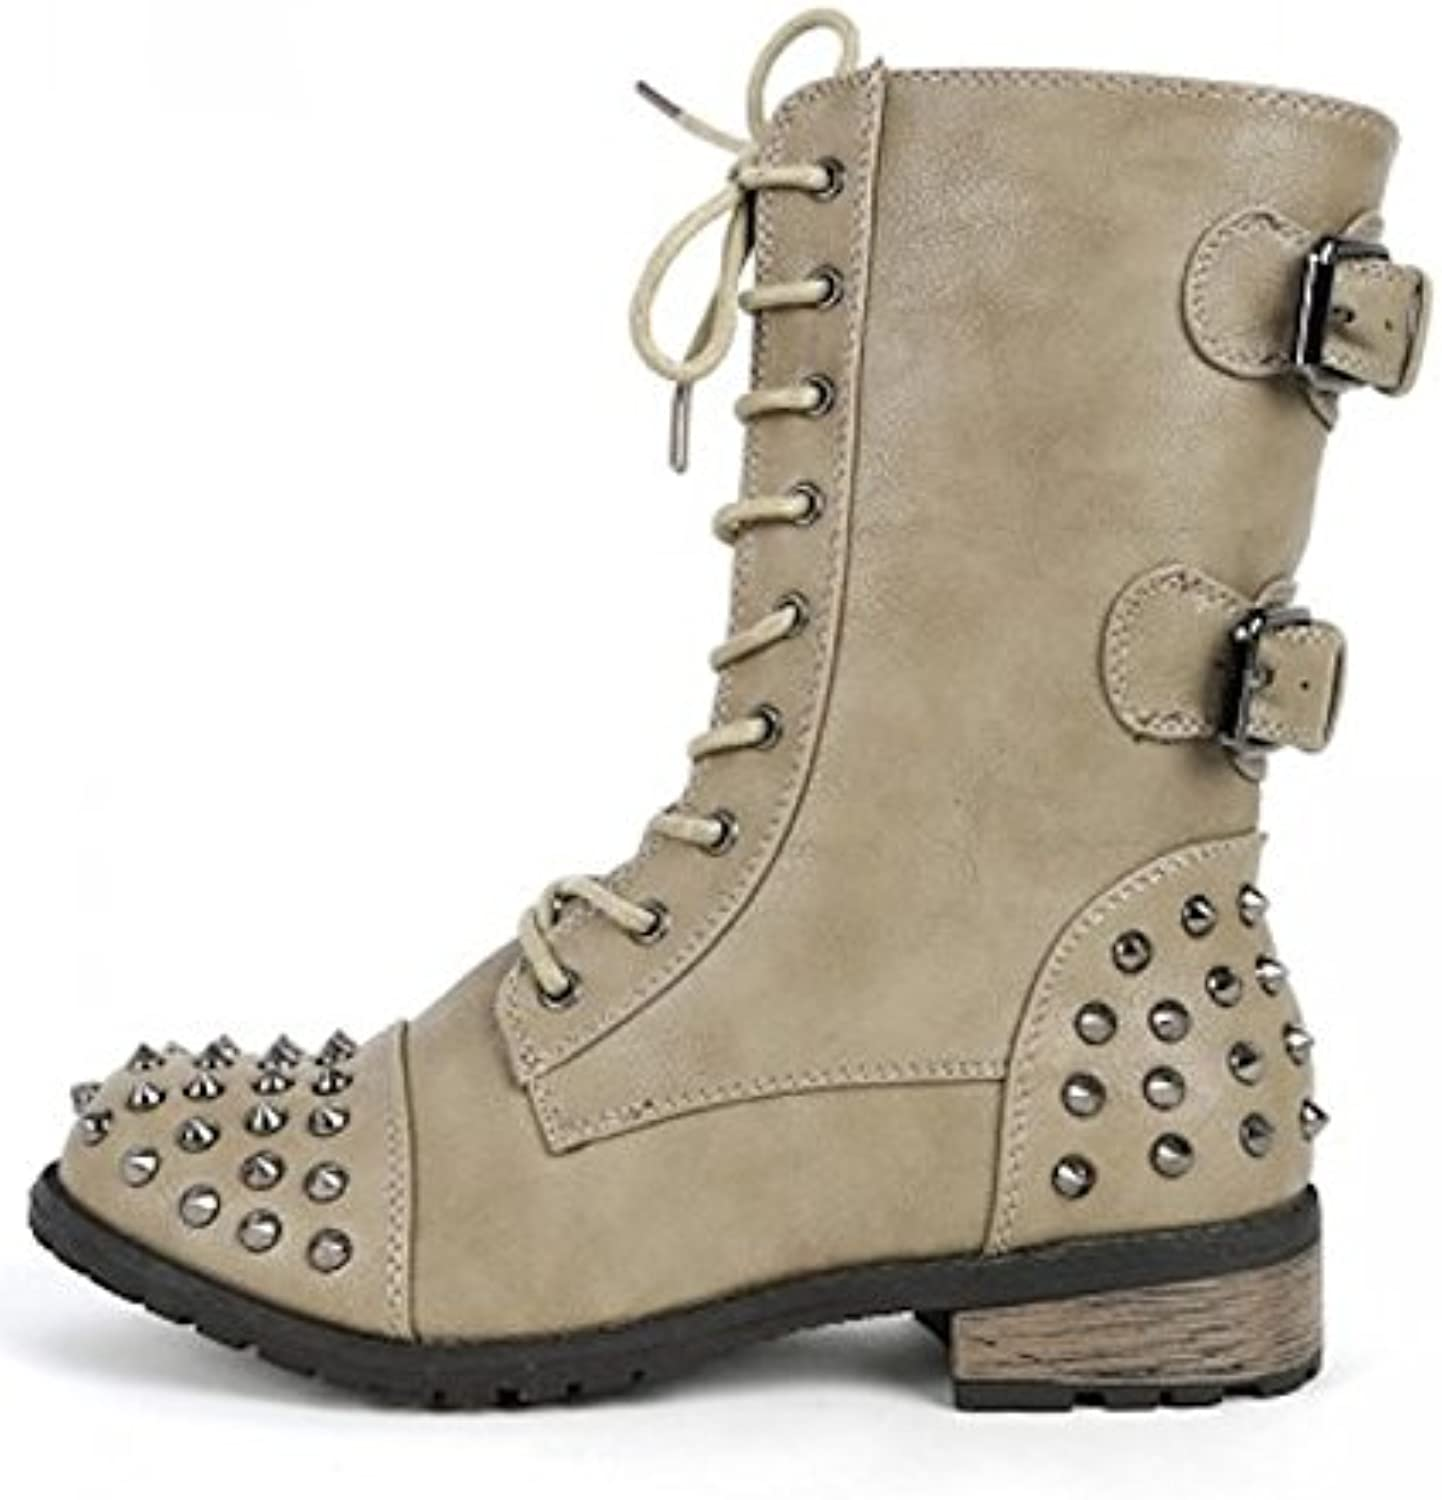 La Bella Fashion Women's Faux Leather Mid Calf Studded Buckle Boots in Black, Brown, Taupe, Stone